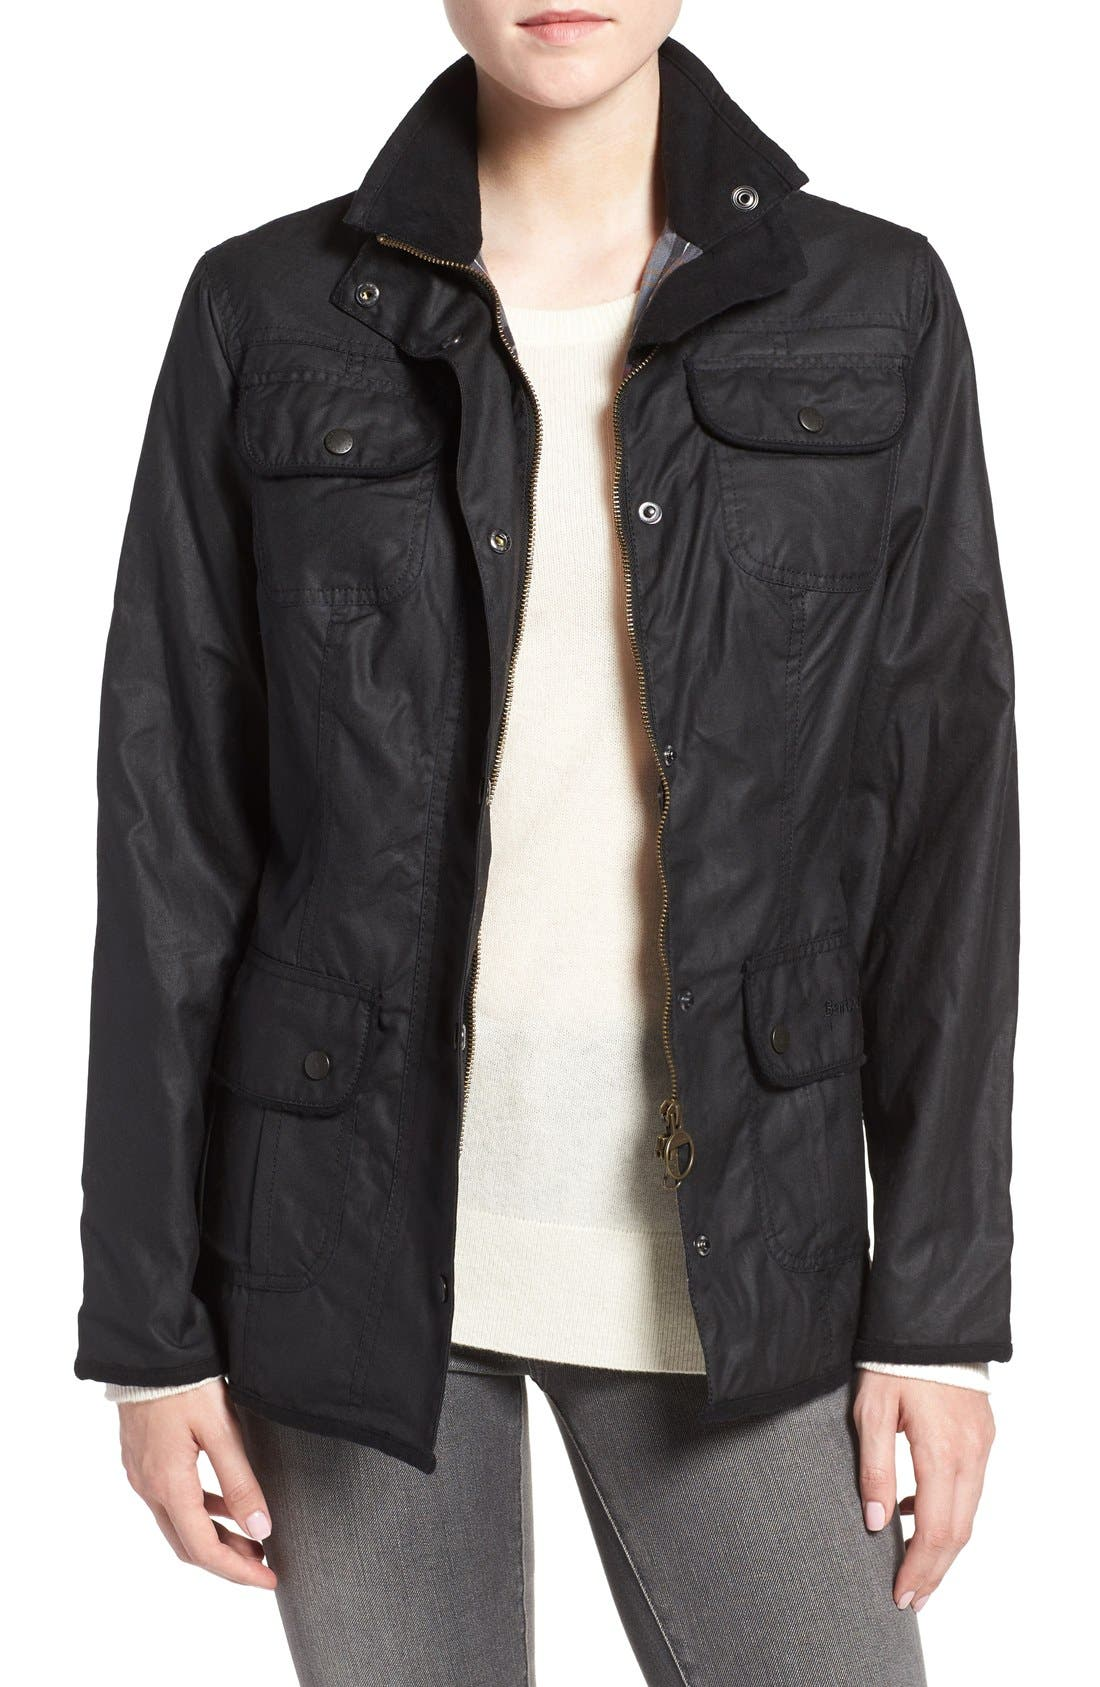 Alternate Image 1 Selected - Barbour Waxed Cotton Utility Jacket